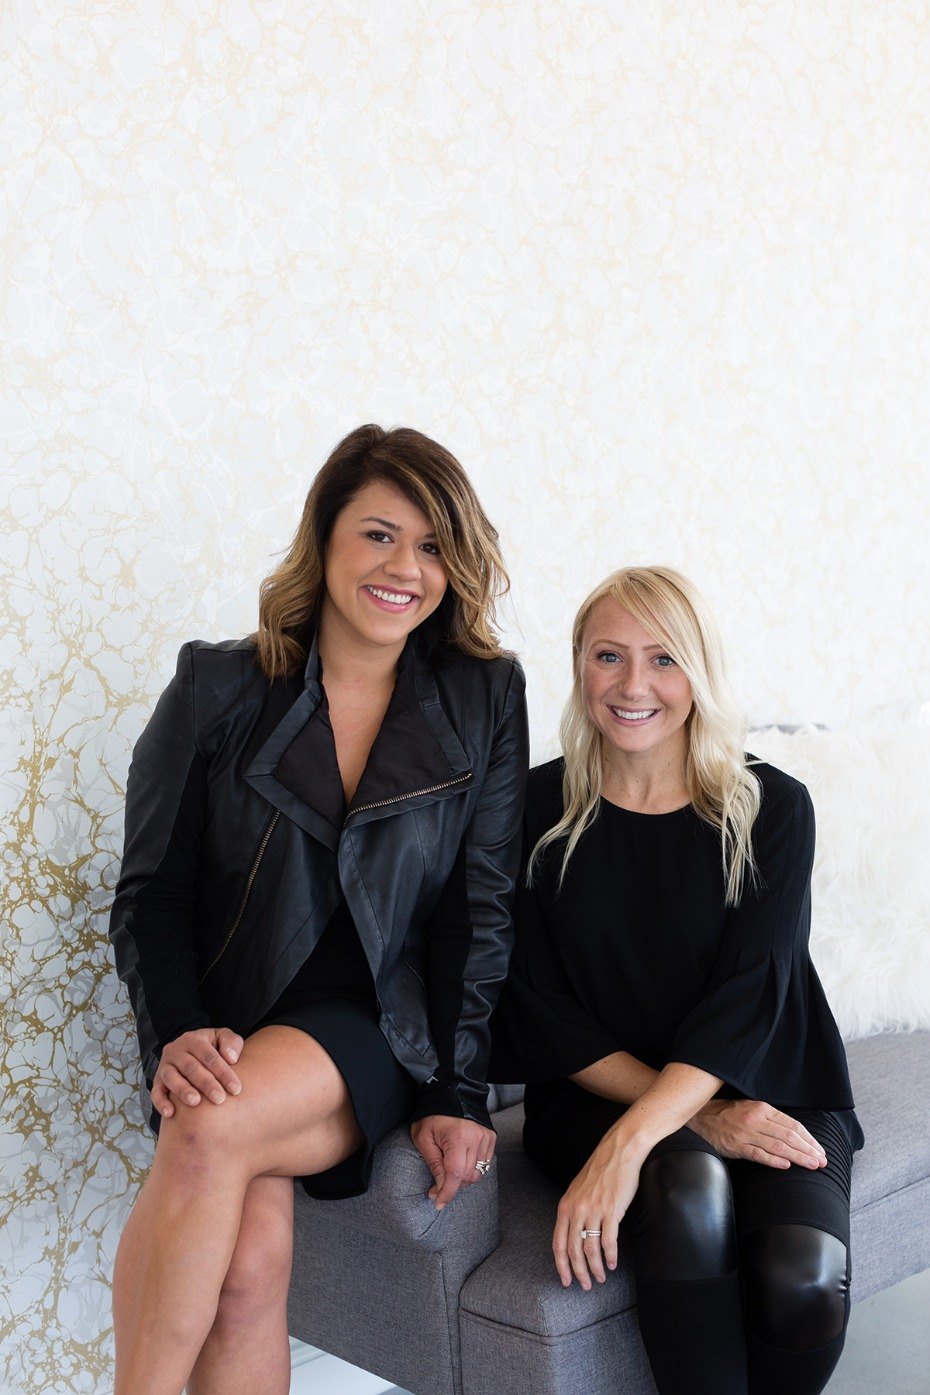 Amber Rigney and Dawn Silva-Rigney, owners of Kinsley James Couture Bridal Salon